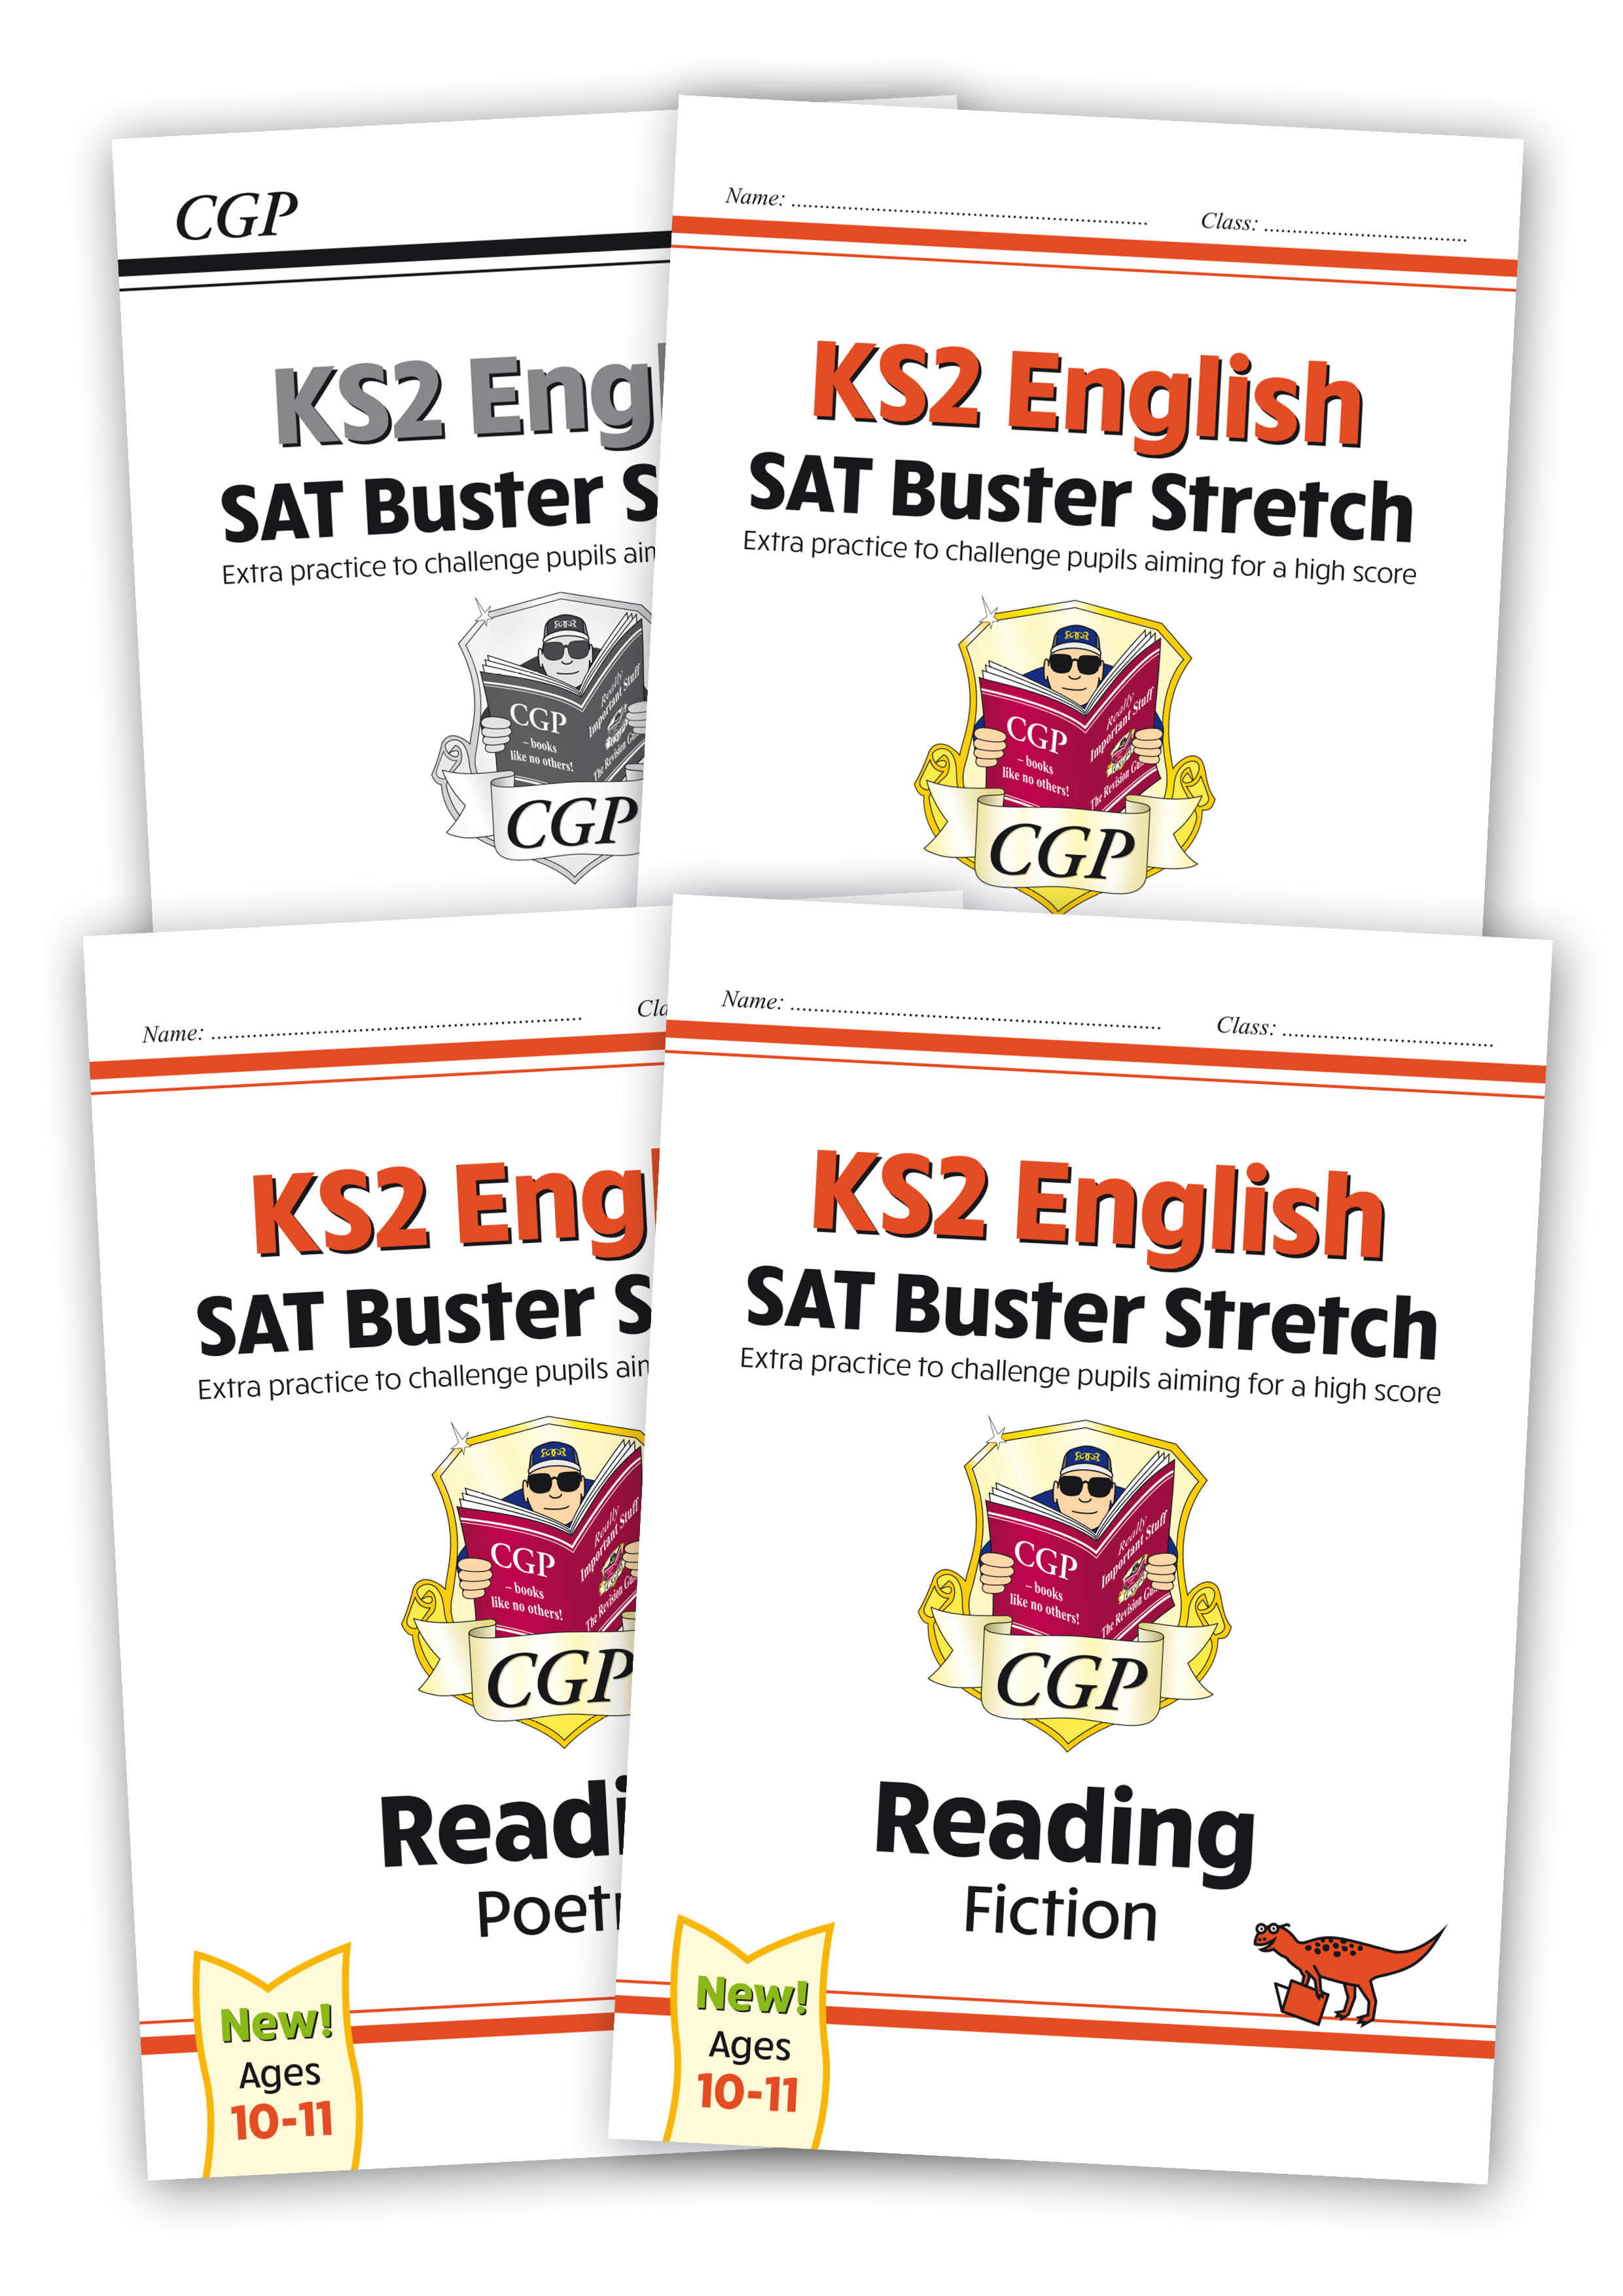 E6HRB22 - New KS2 English Reading SAT Buster Stretch Bundle - includes answers (for the 2021 tests)